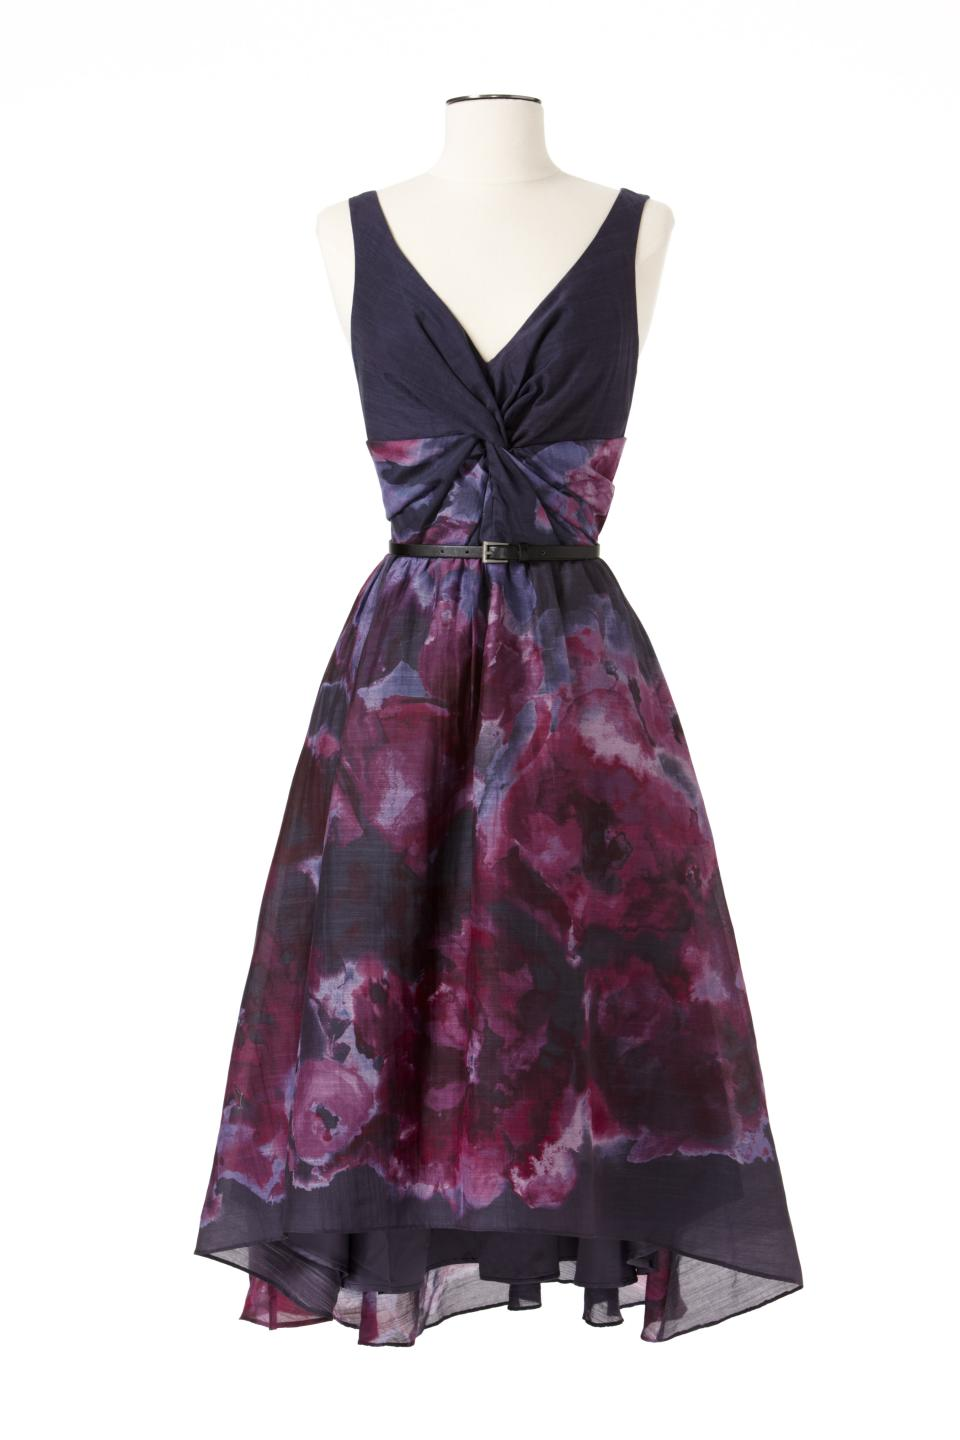 <b>Lela Rose for Target + Neiman Marcus Holiday Collection Dress</b><br><br> Price: $99.99<br><br> Size: 2 – 14<br><br>